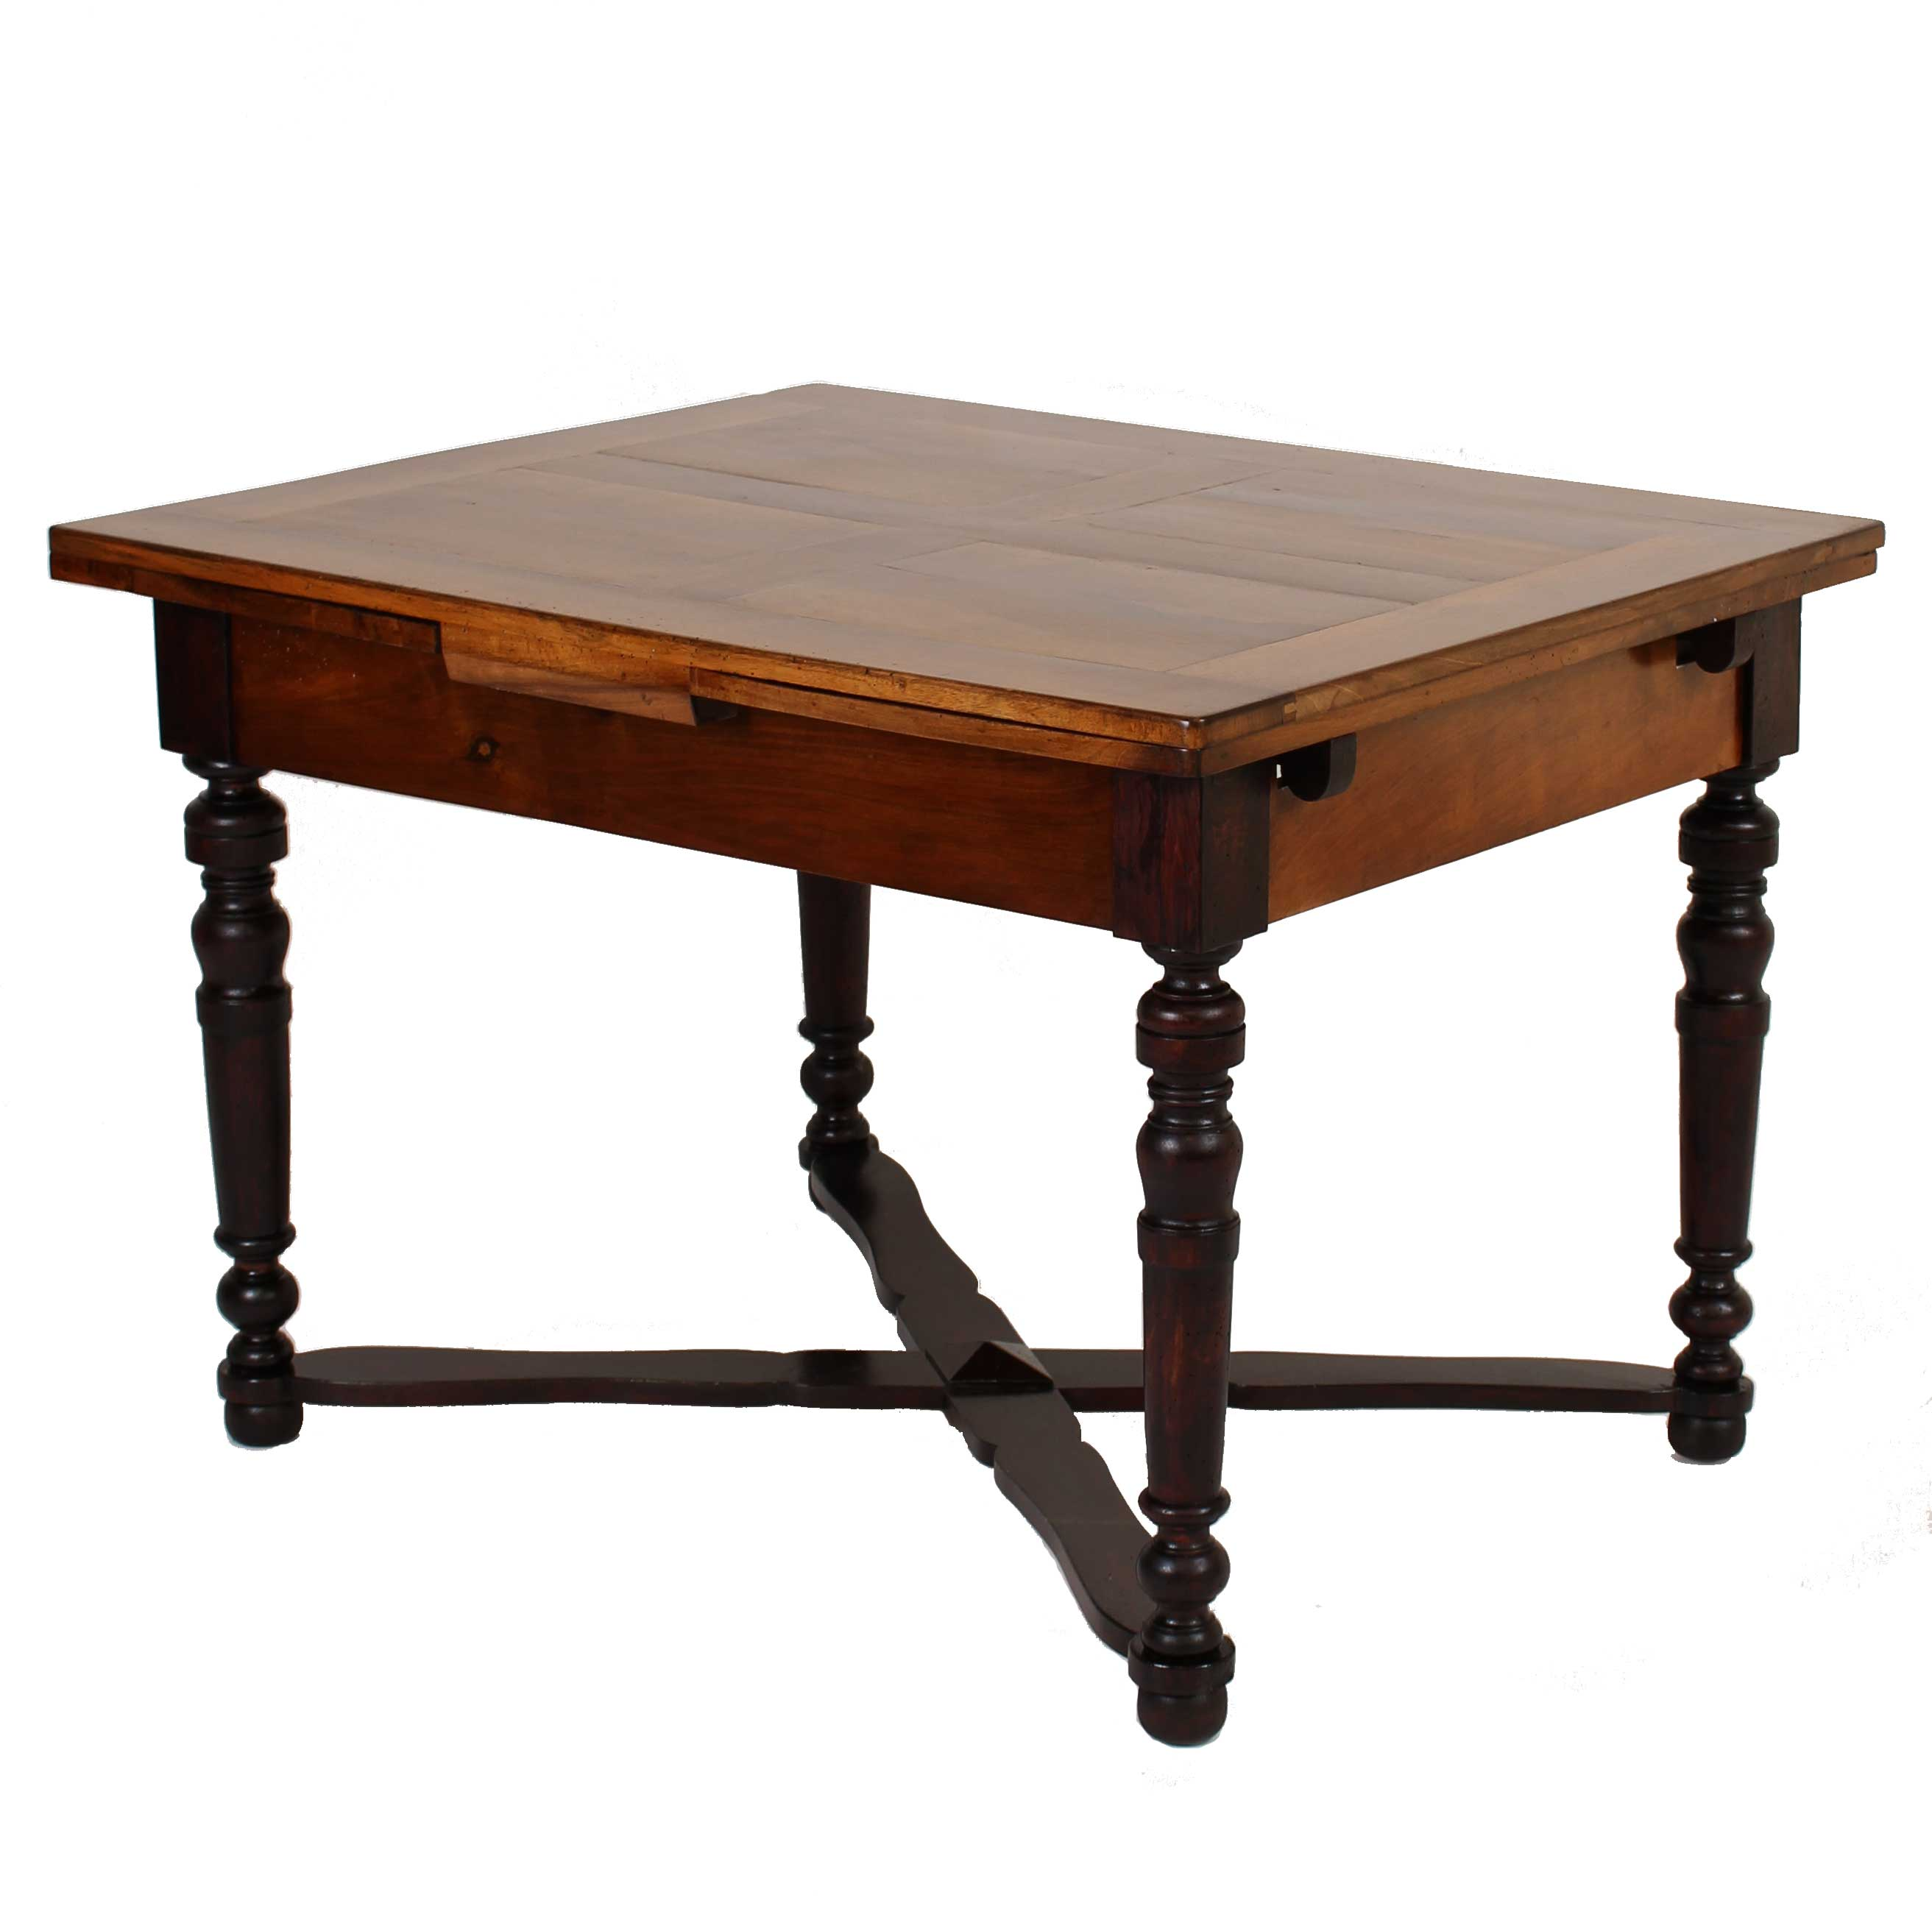 High Quality Antique Farmhouse Table. «